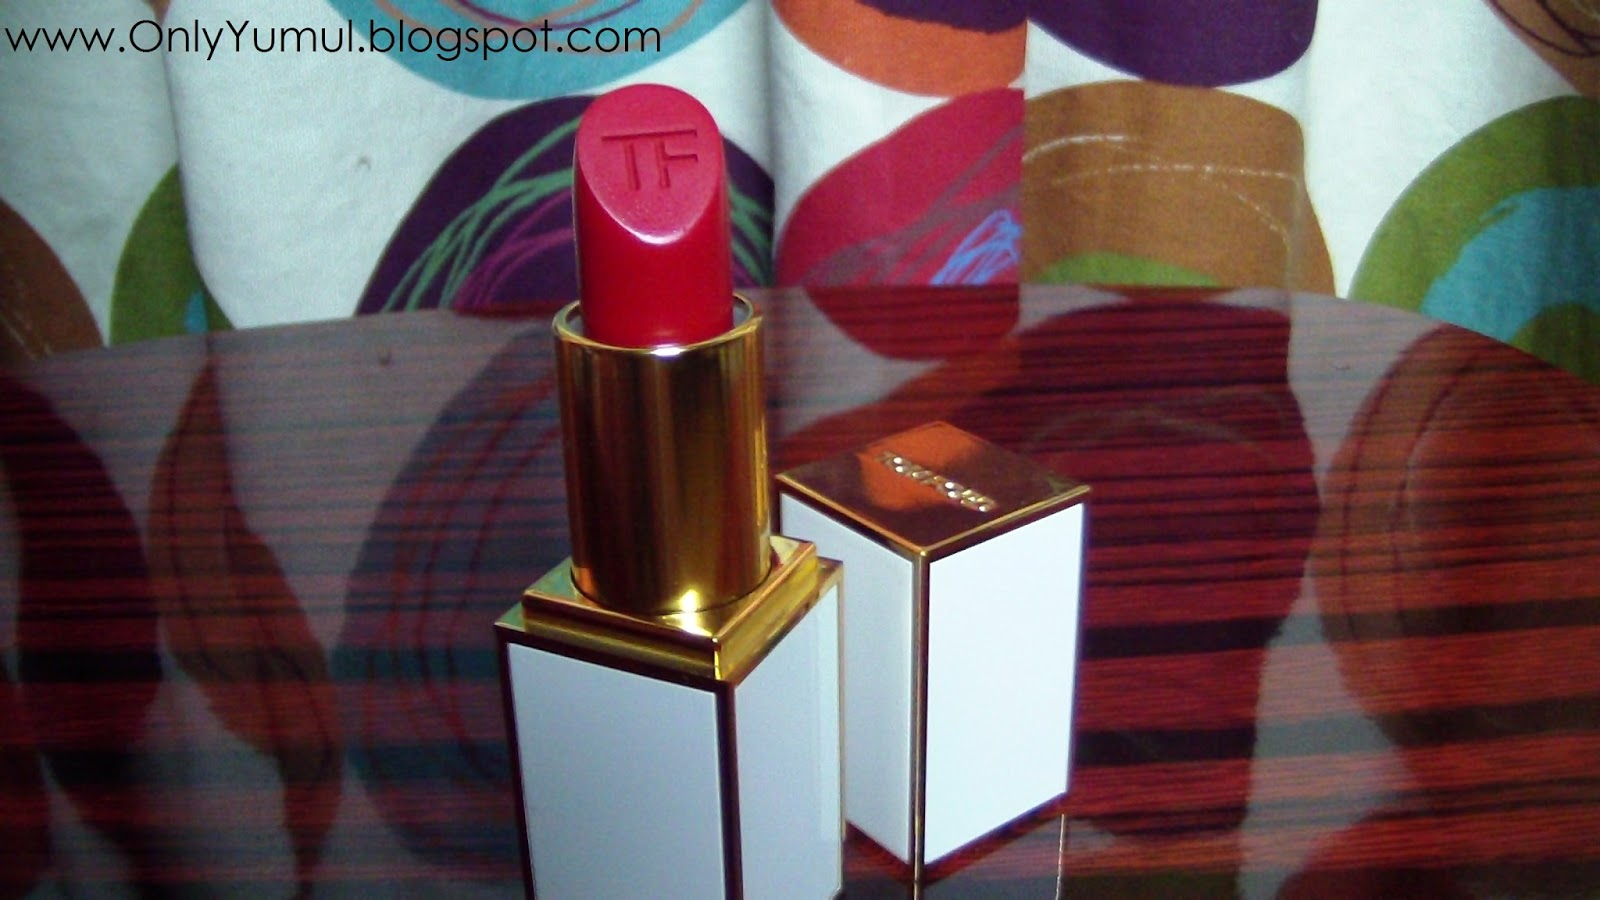 onlyyumul tom ford lip color in cherry lush. Black Bedroom Furniture Sets. Home Design Ideas